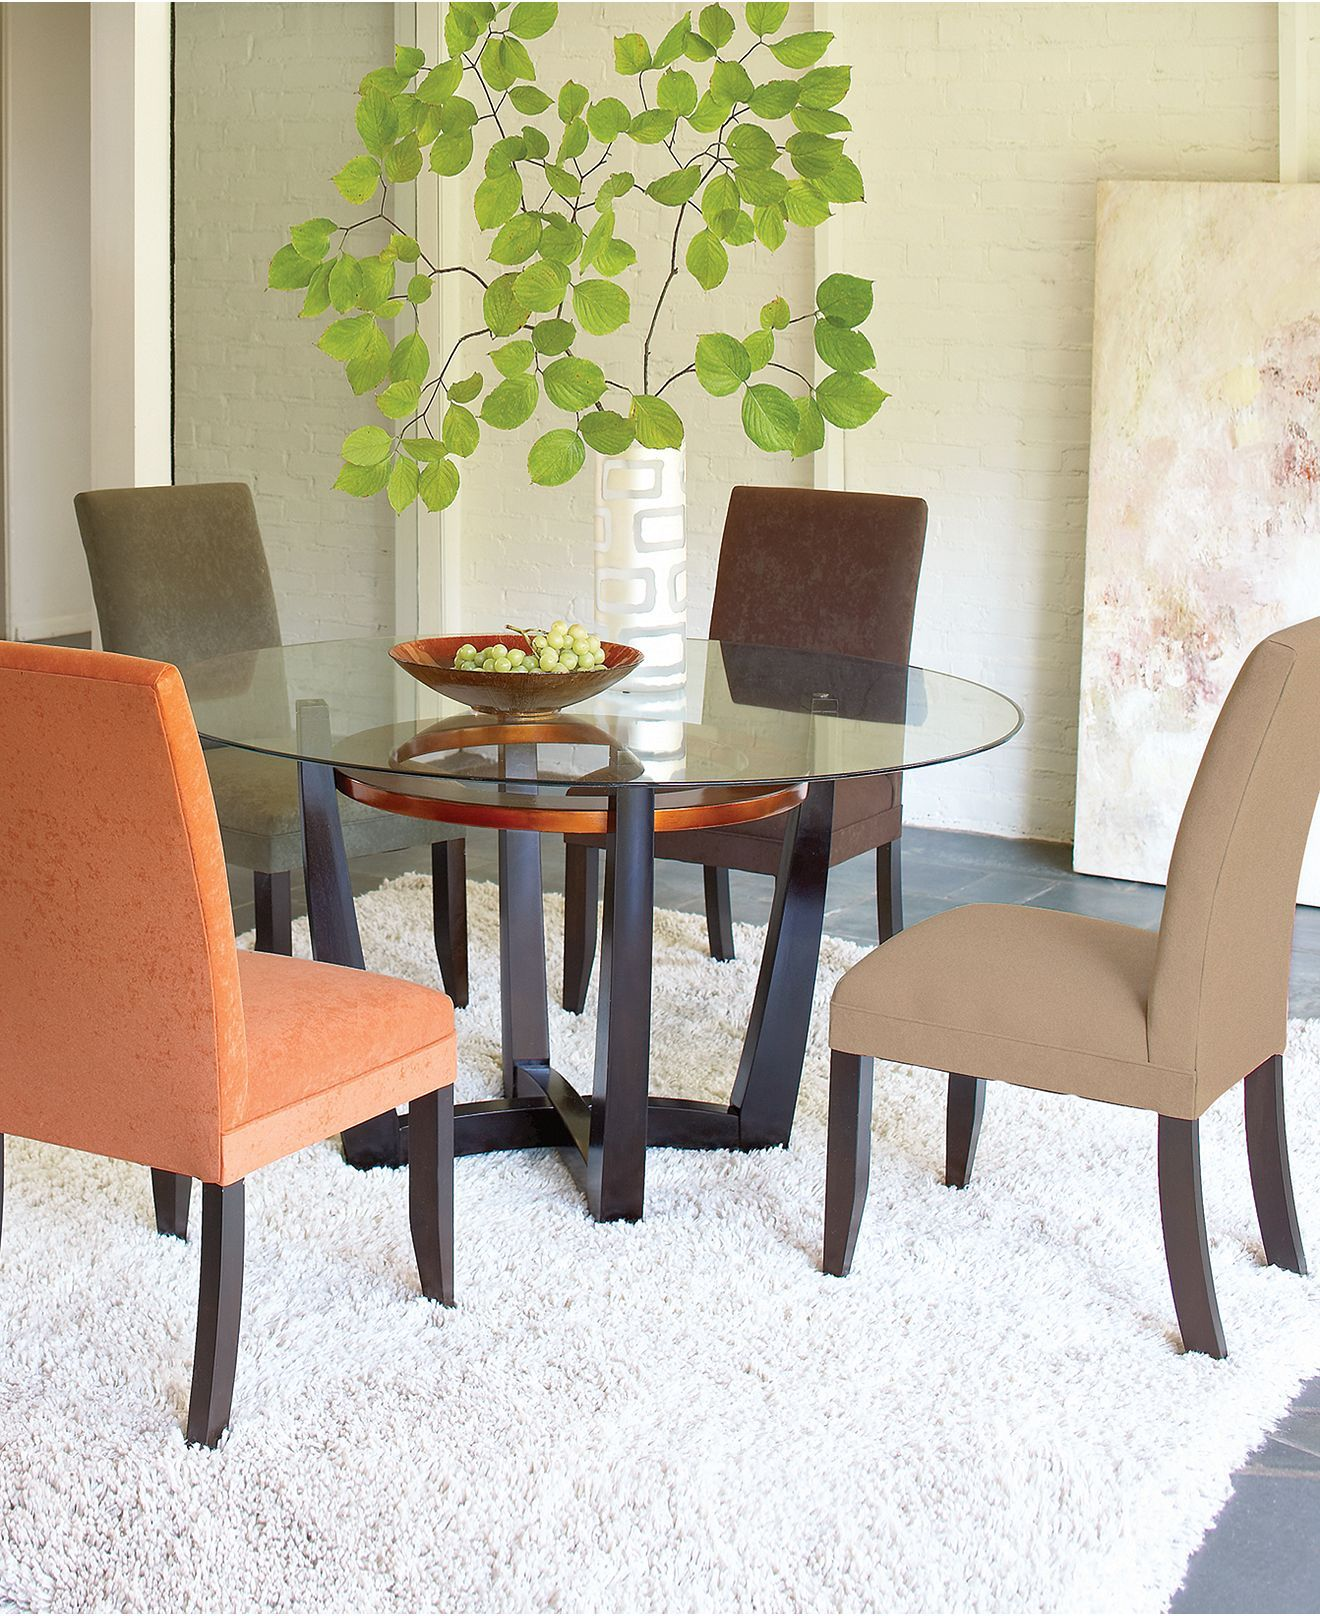 Dining Room Furniture Glass Cappuccino Dining Room Furniture Wood Base Circular Glass